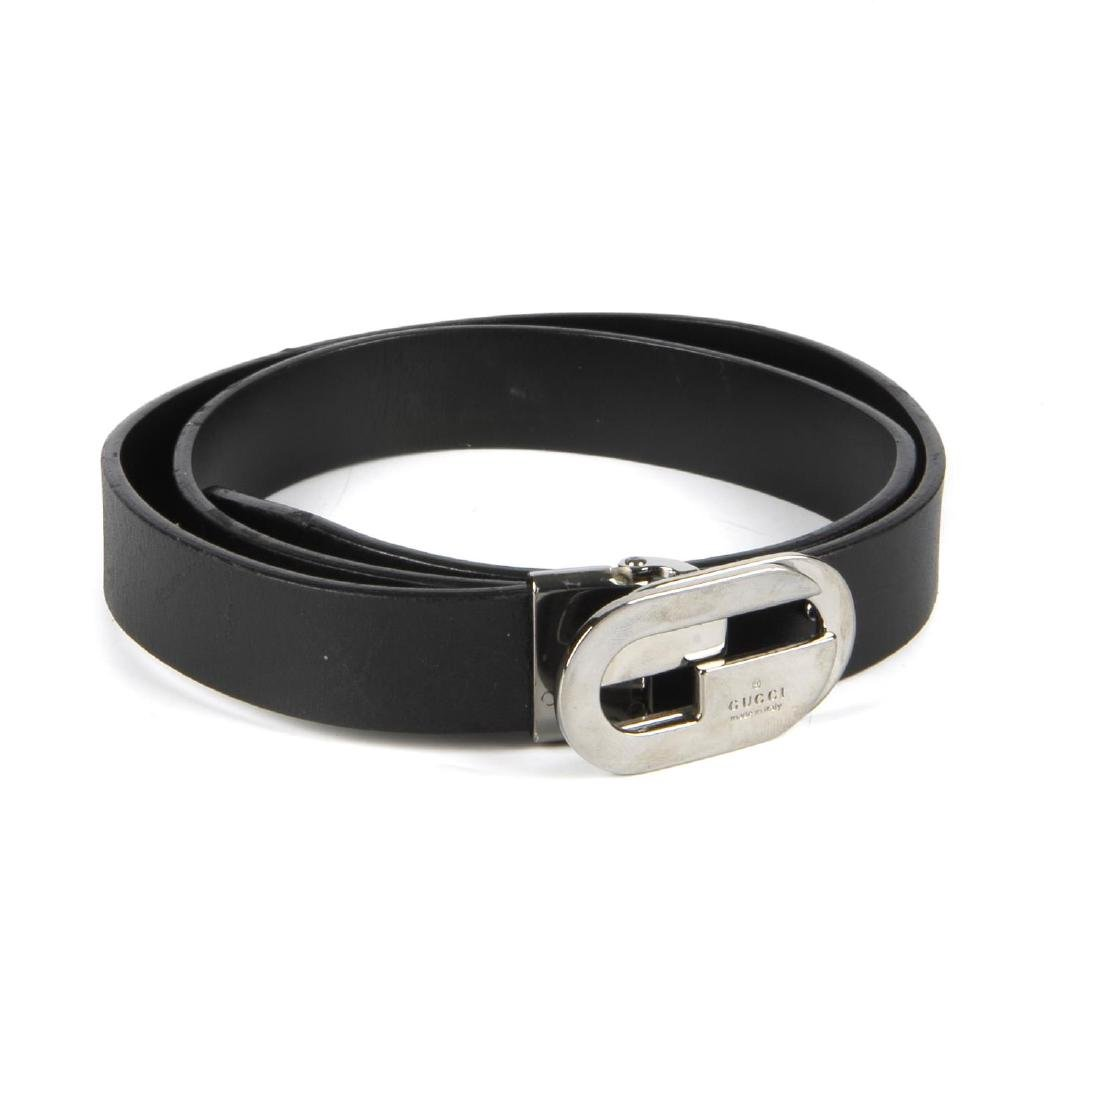 GUCCI - a black leather belt. Featuring a polished